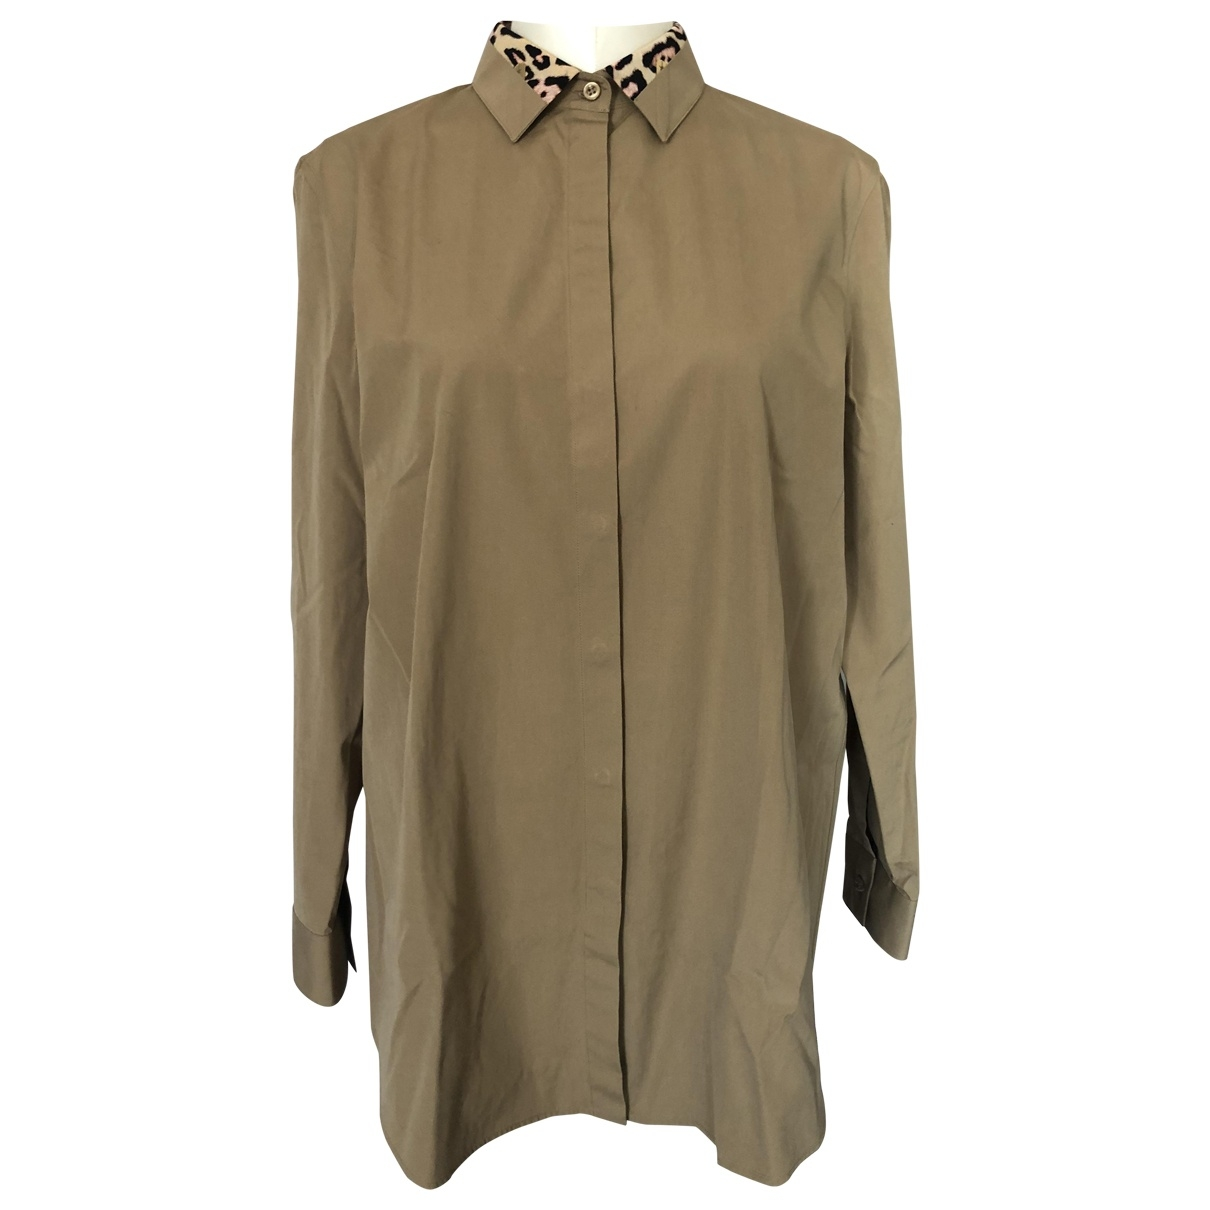 Givenchy \N Beige Cotton  top for Women 42 IT